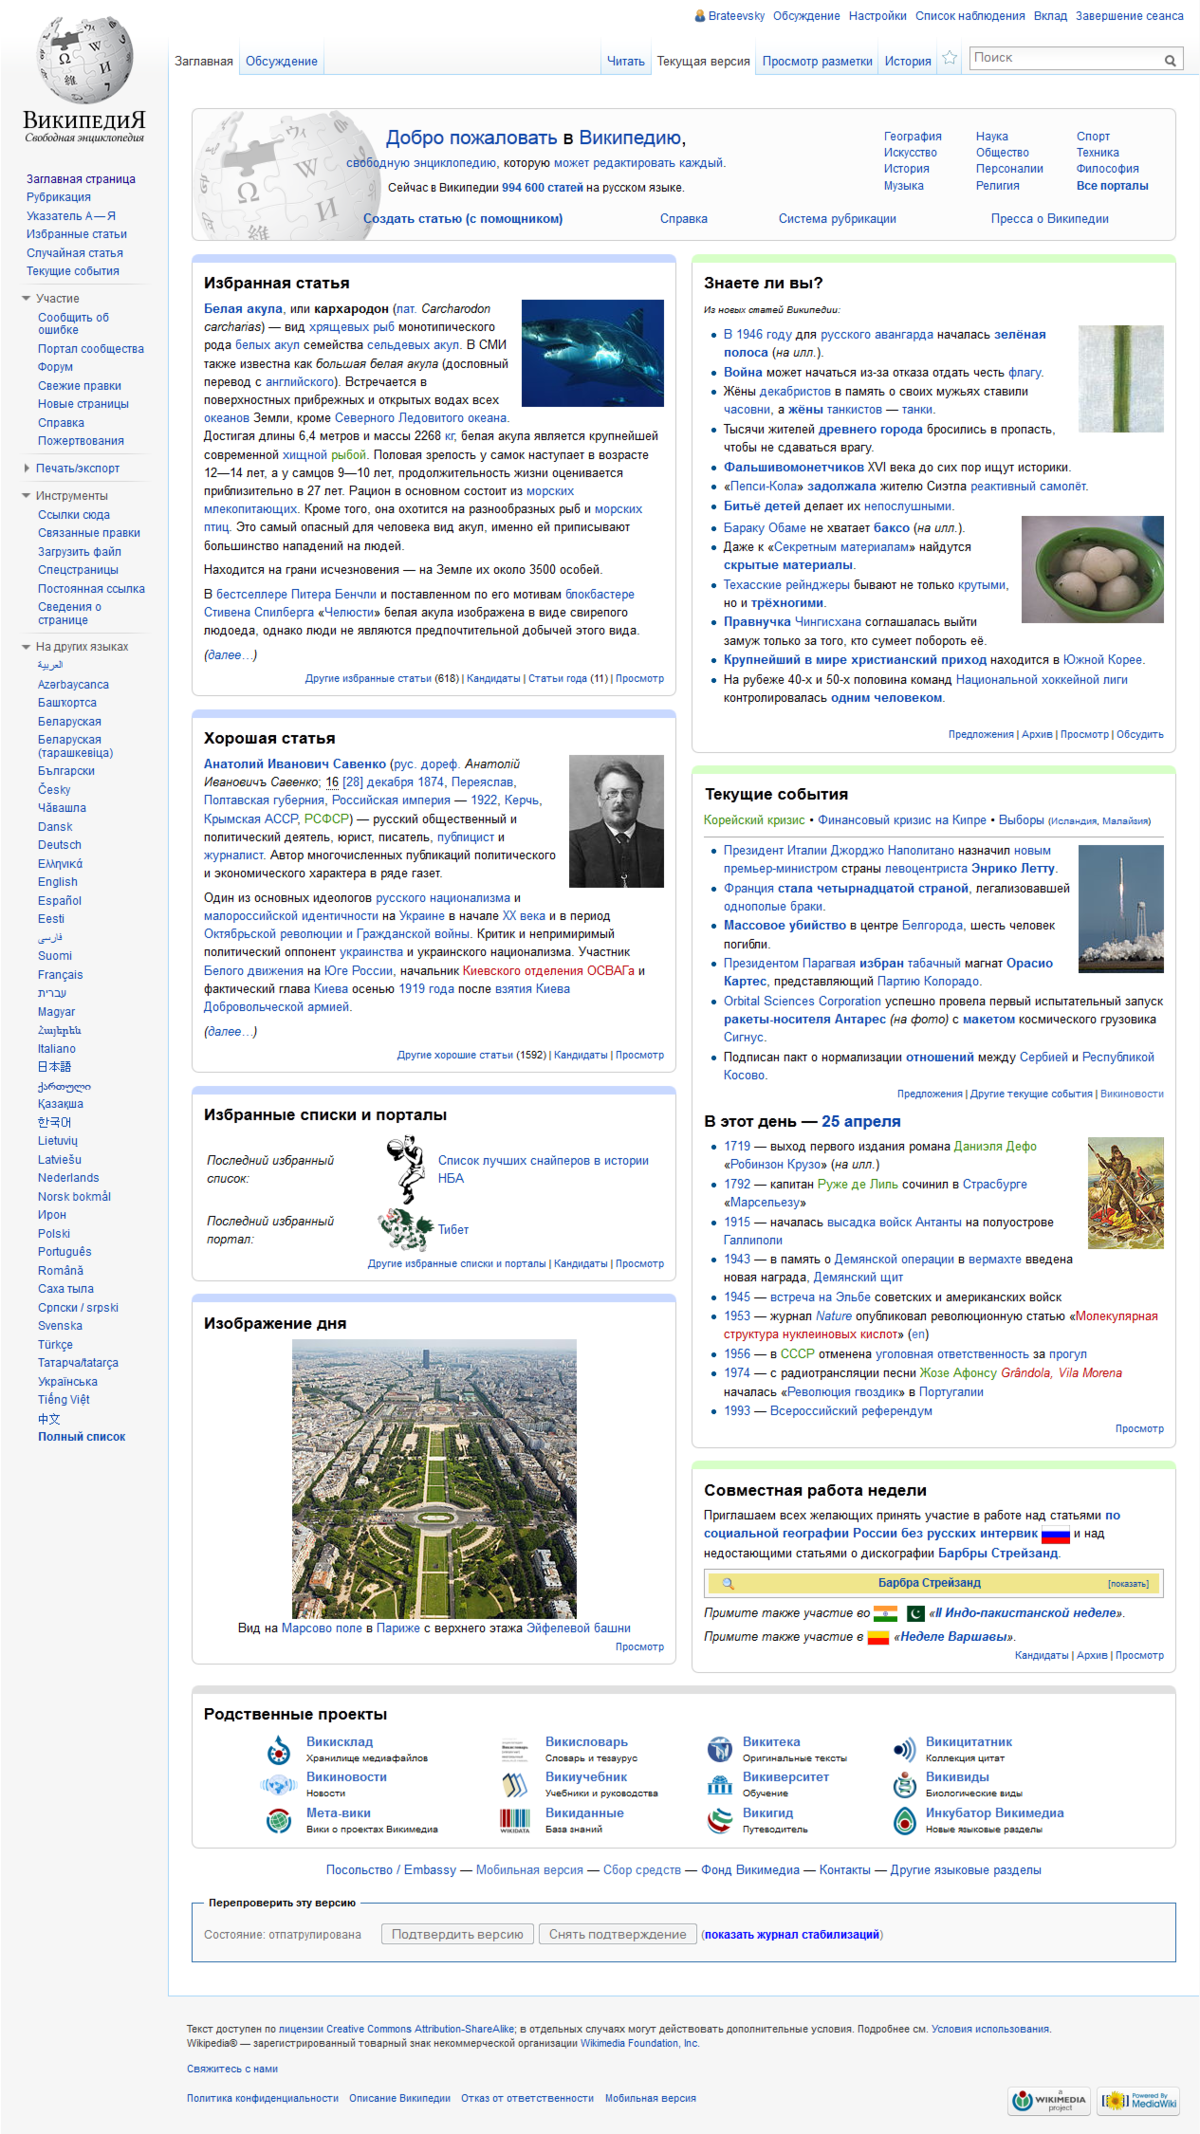 Free Encyclopedia Russian Language Edition 50